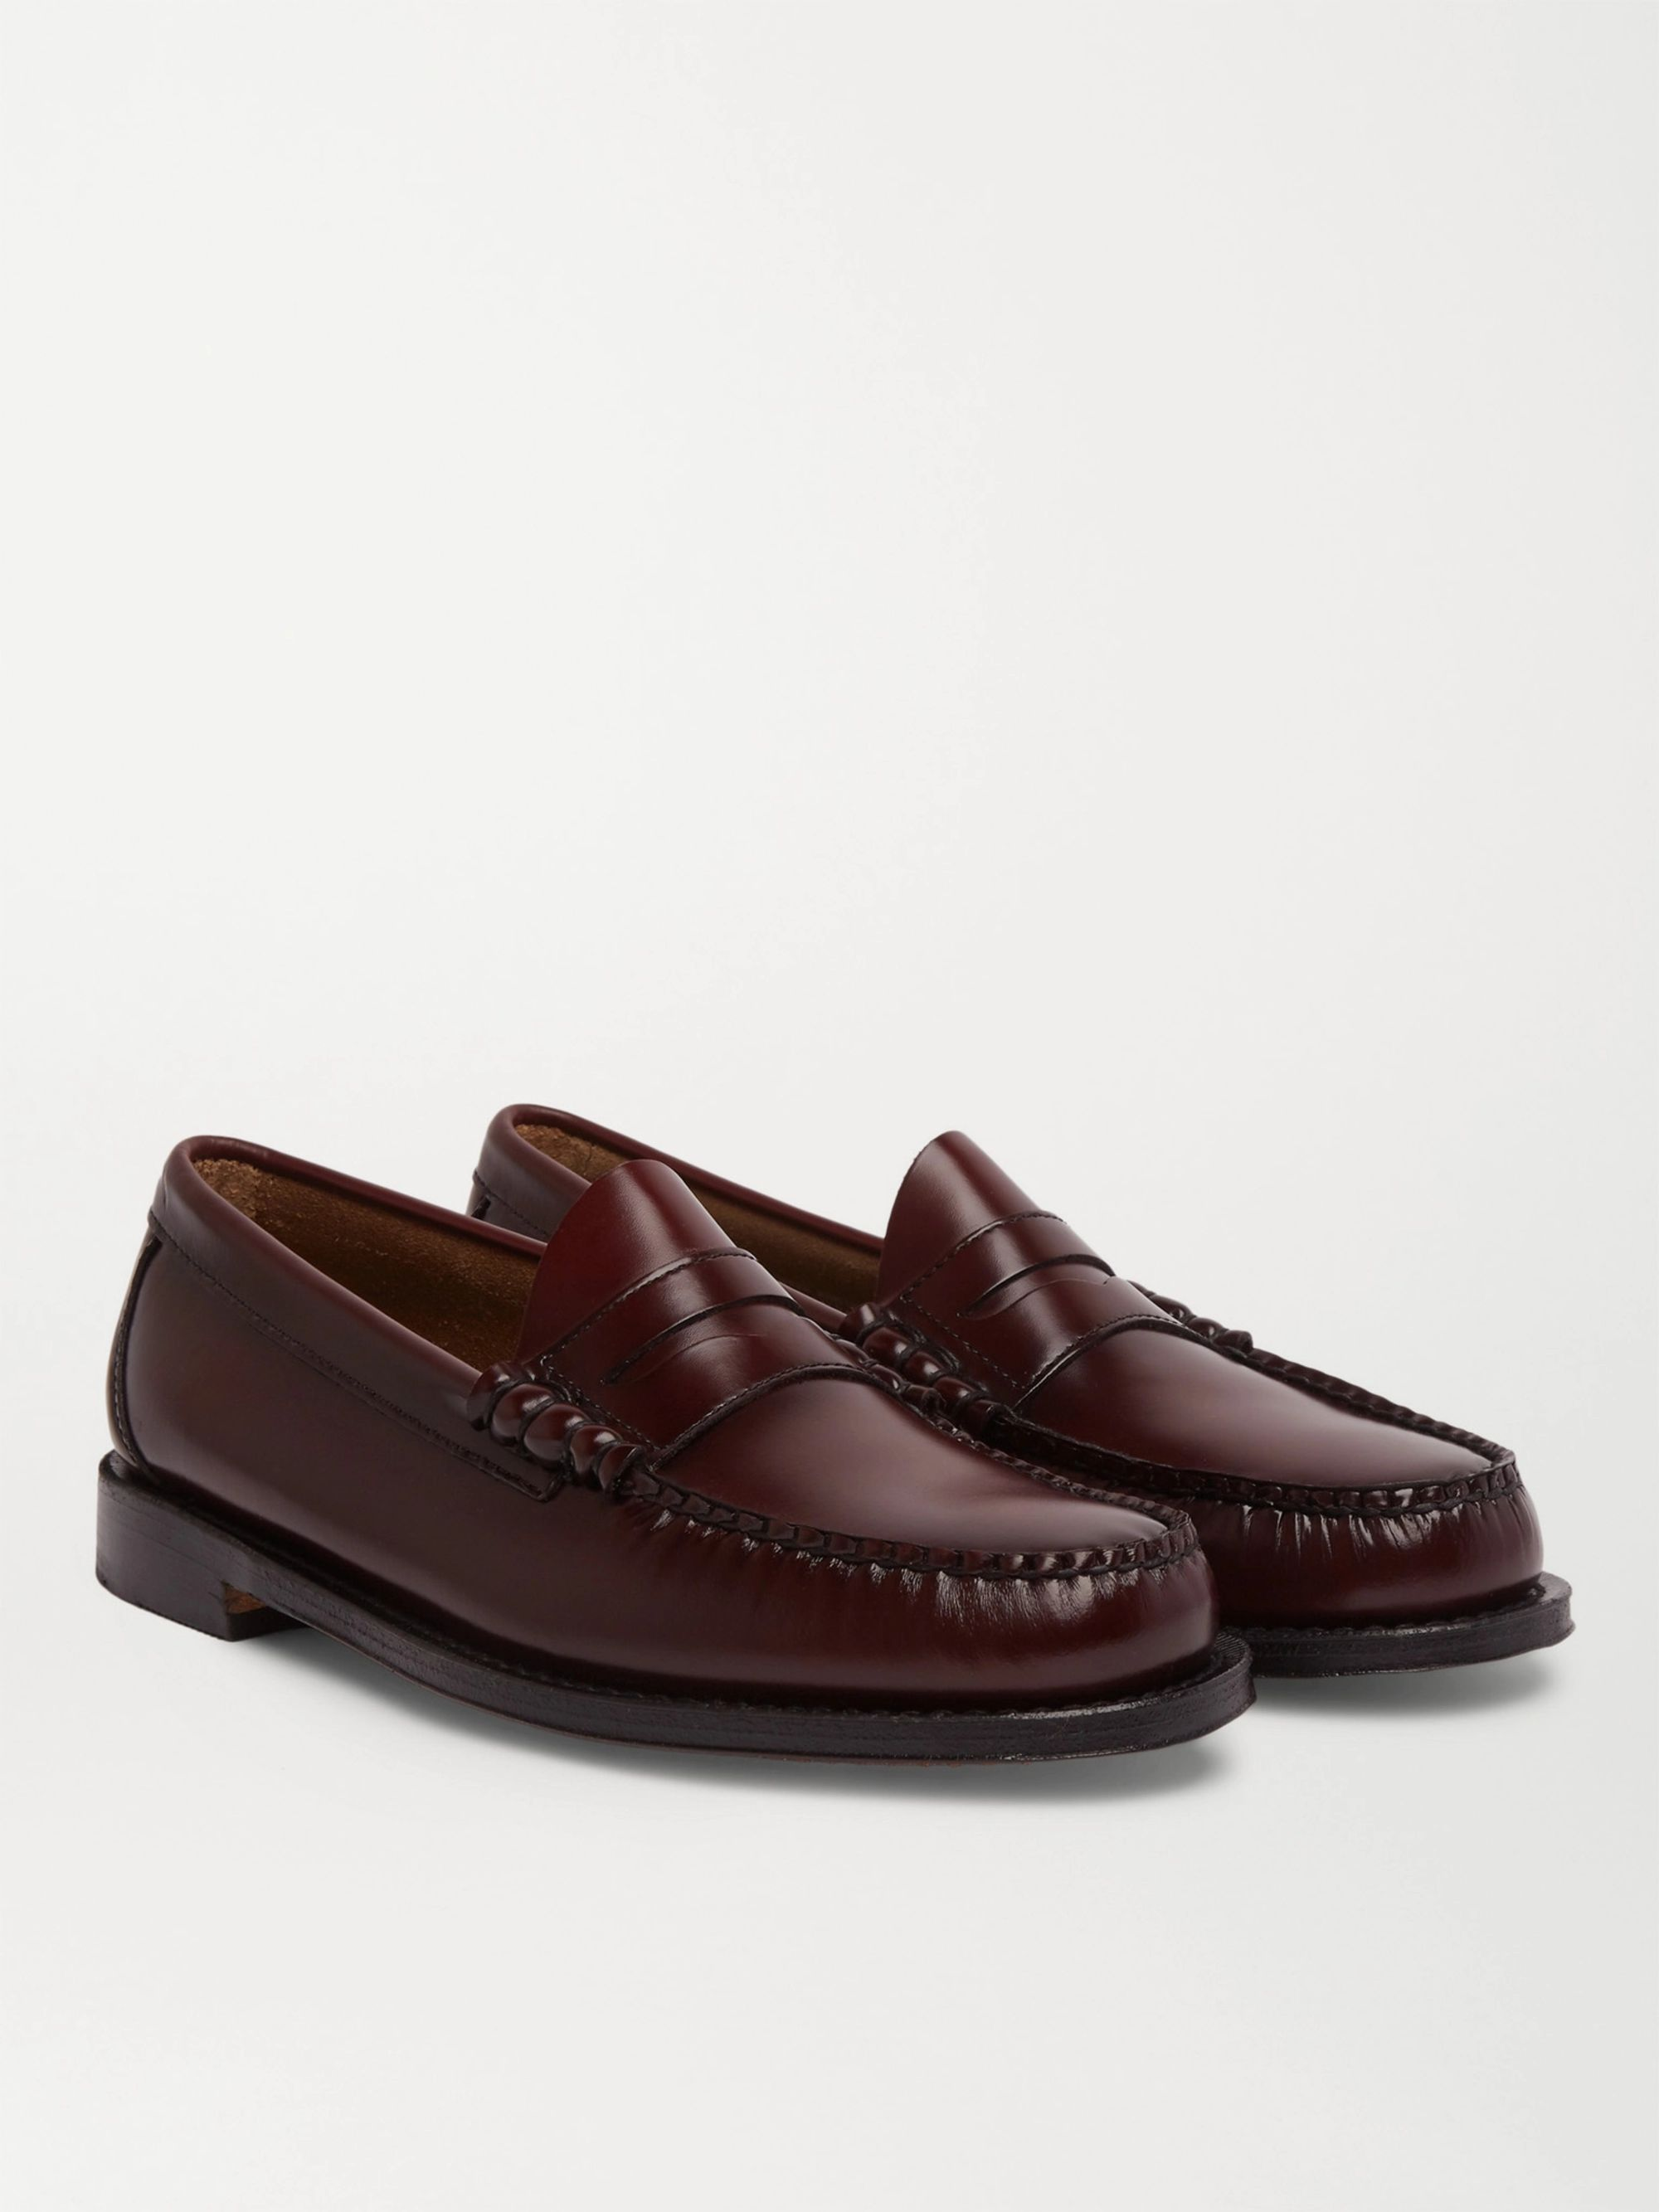 G.H. Bass & Co. Weejuns Larson Leather Penny Loafers